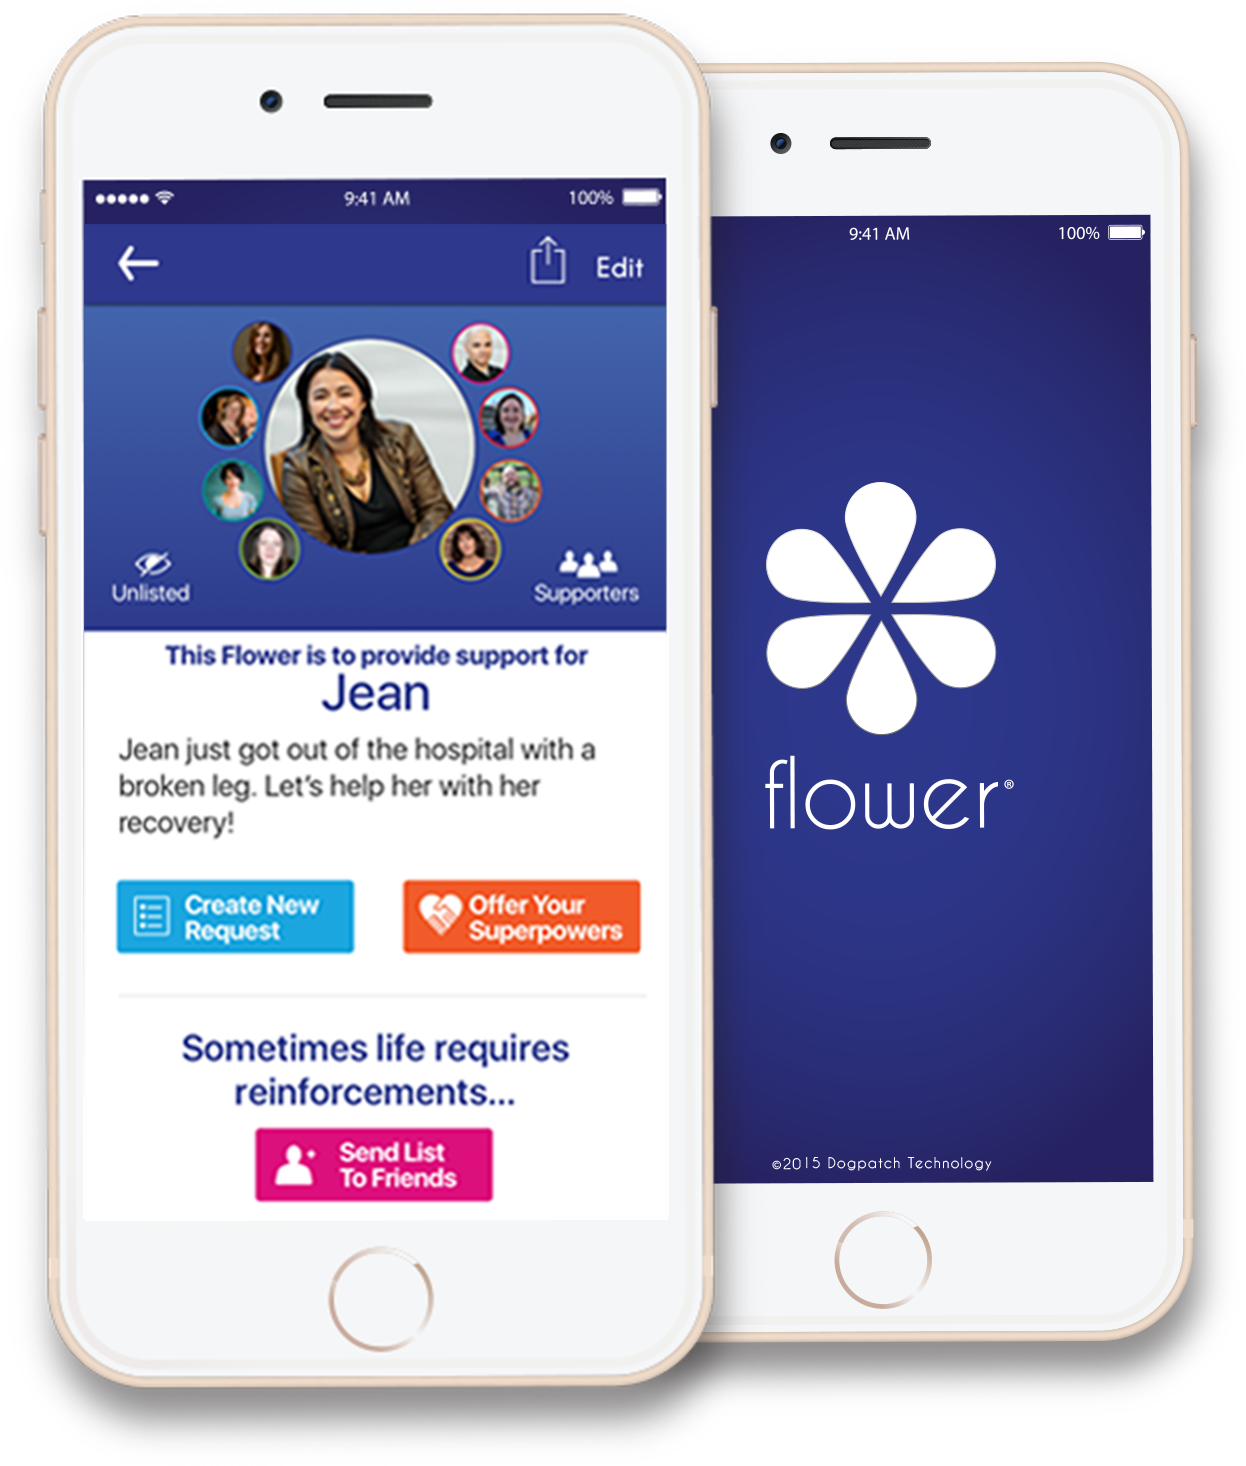 Flower app helps organizations gather support